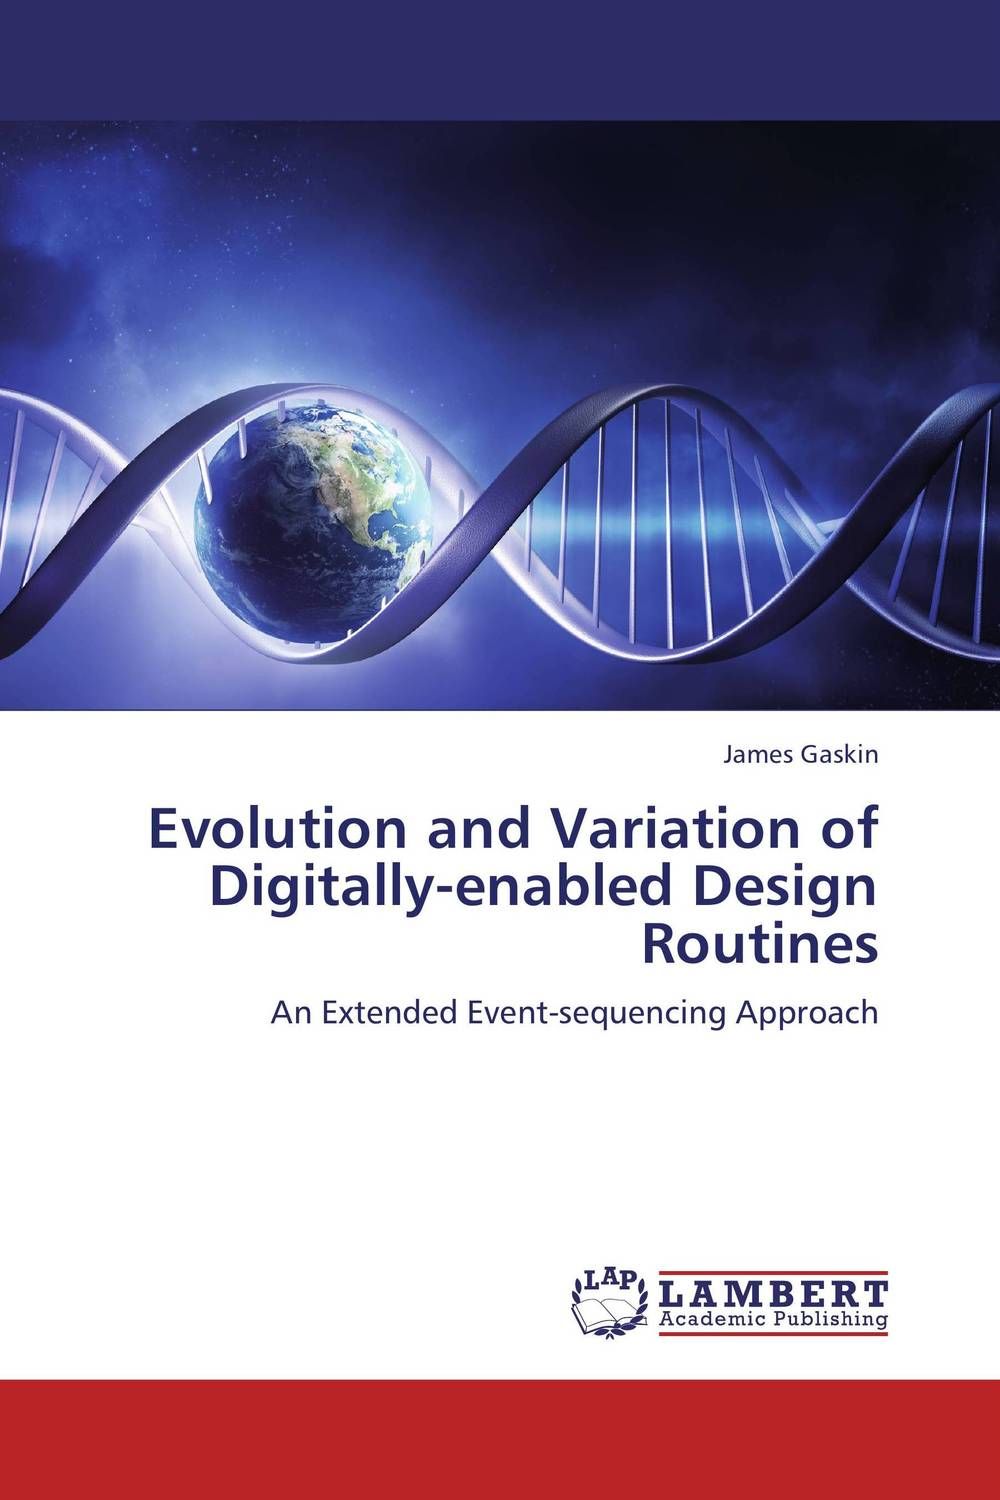 Evolution and Variation of Digitally-enabled Design Routines sense and sensibility